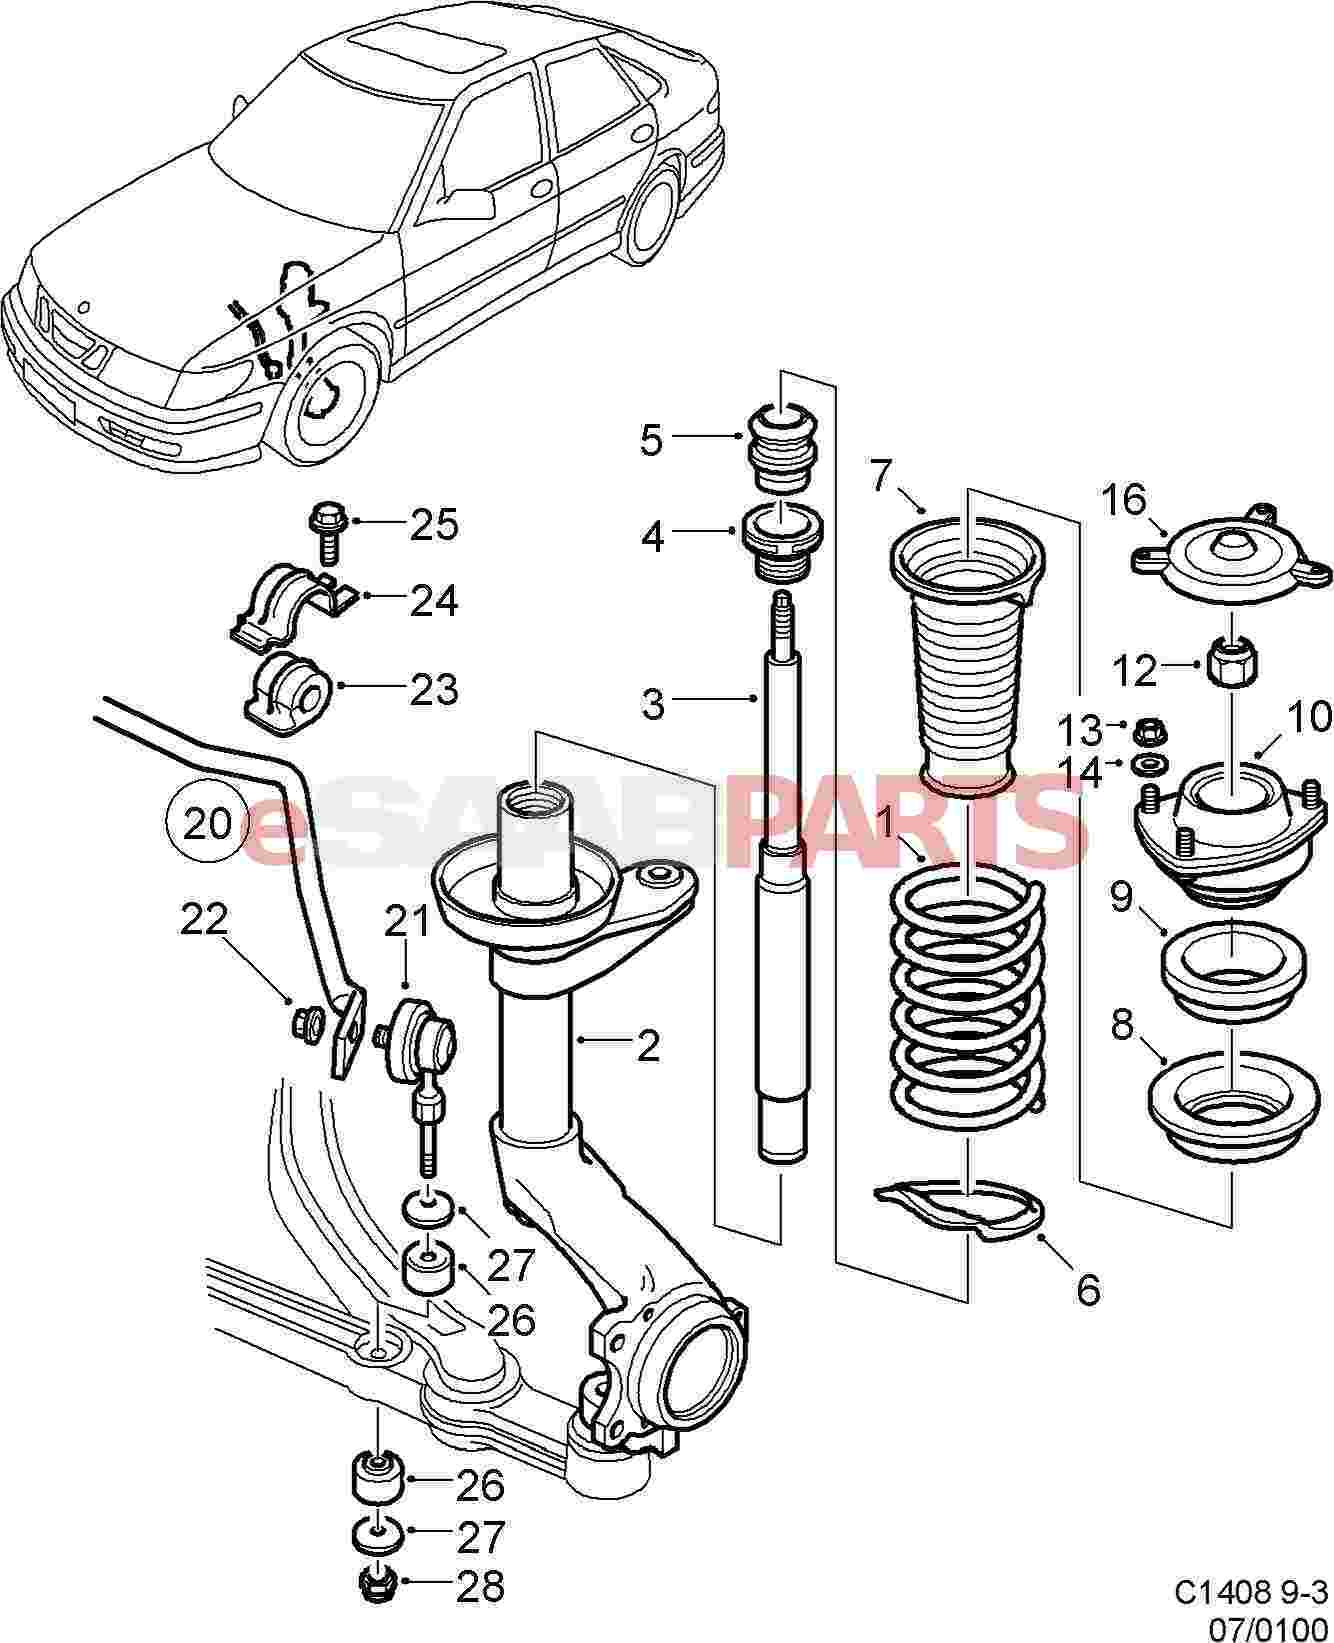 esaabparts com saab 9 3 9400 u003e suspension wheels parts u003e front rh esaabparts com saab 9 7x air suspension diagram saab 9-3 rear suspension diagram